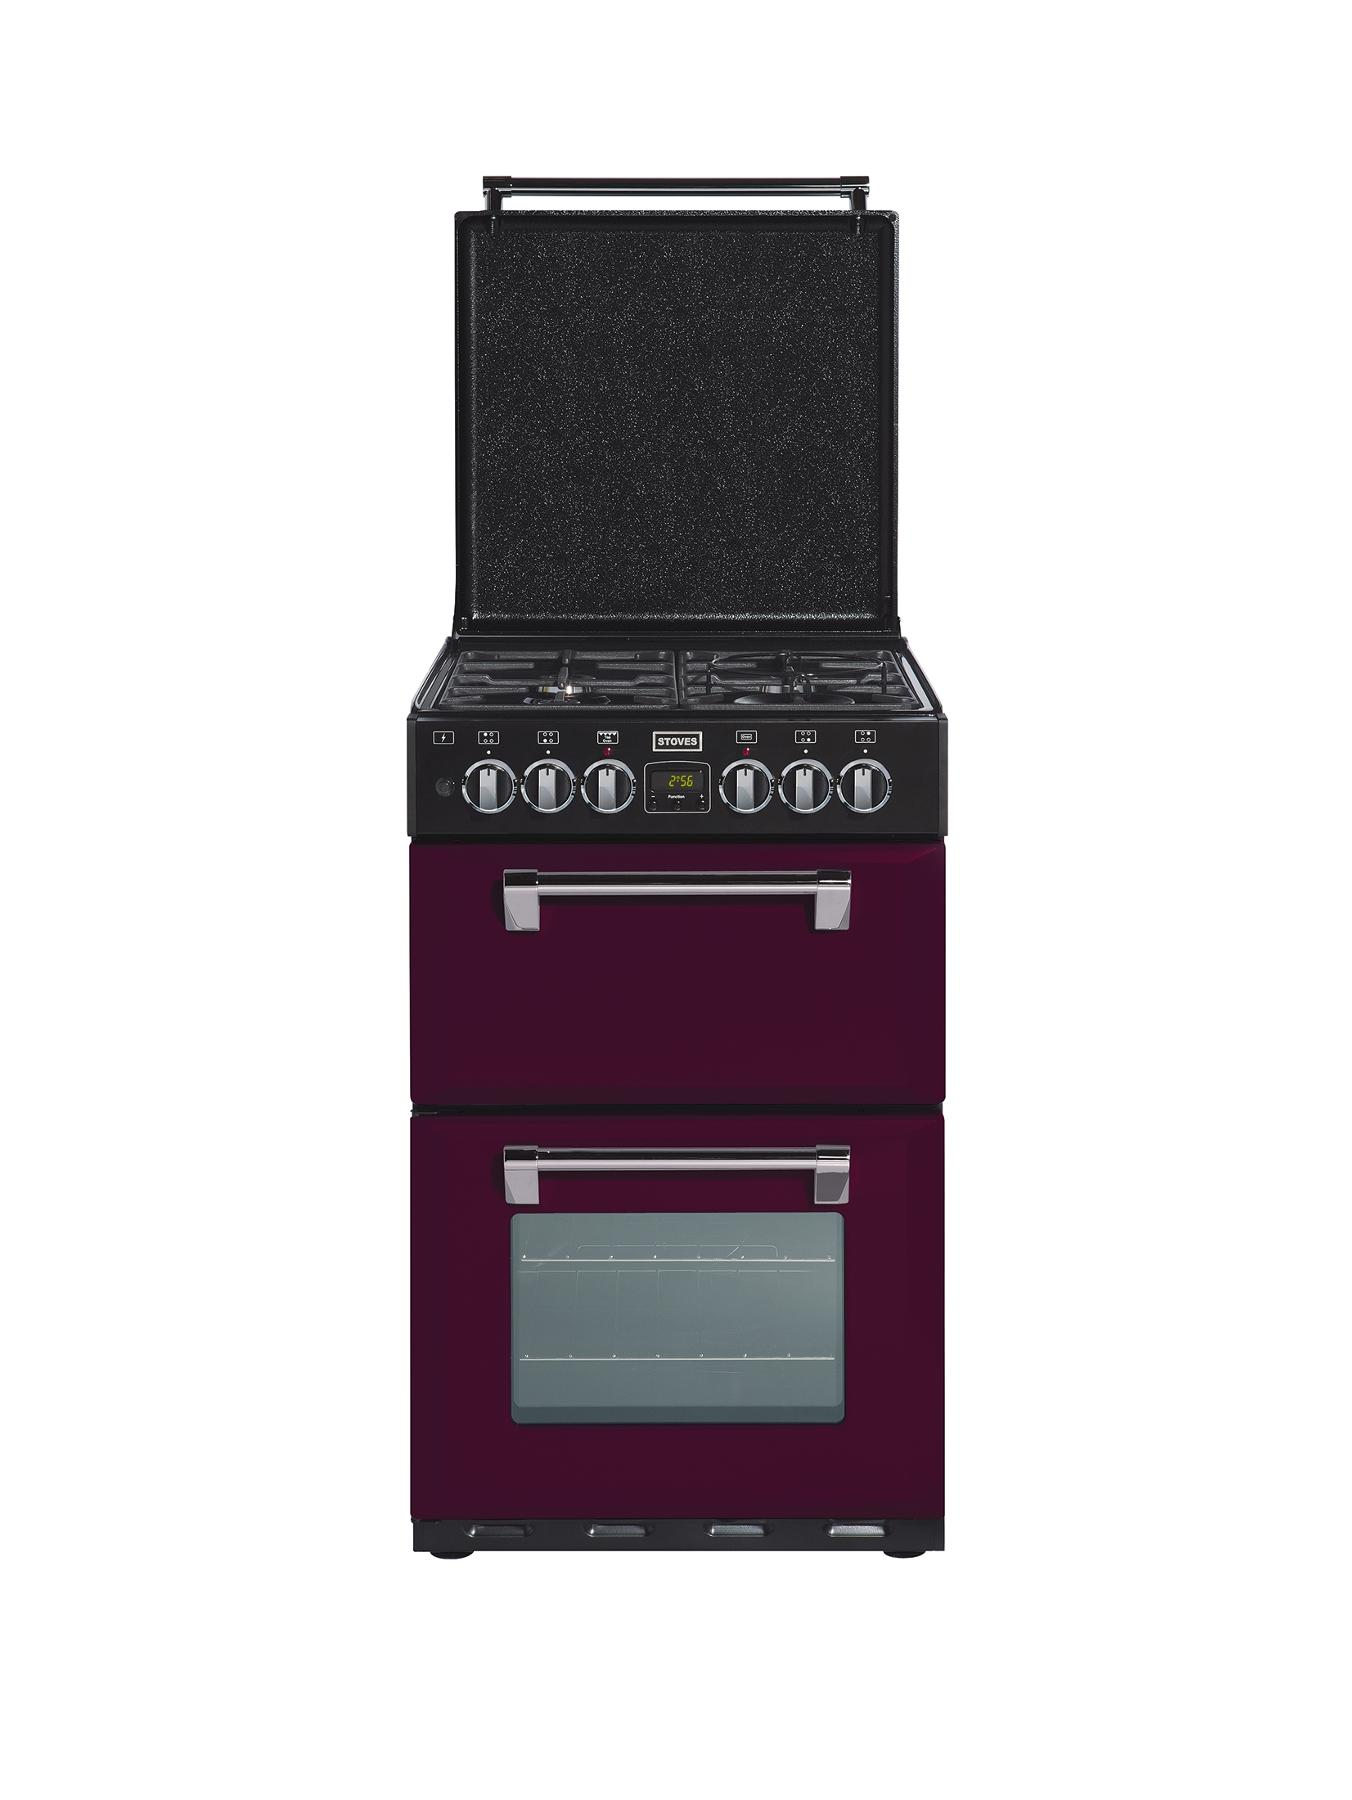 550DFW 55 cm Double Oven Dual Fuel Richmond Mini Range Cooker - Wild Berry